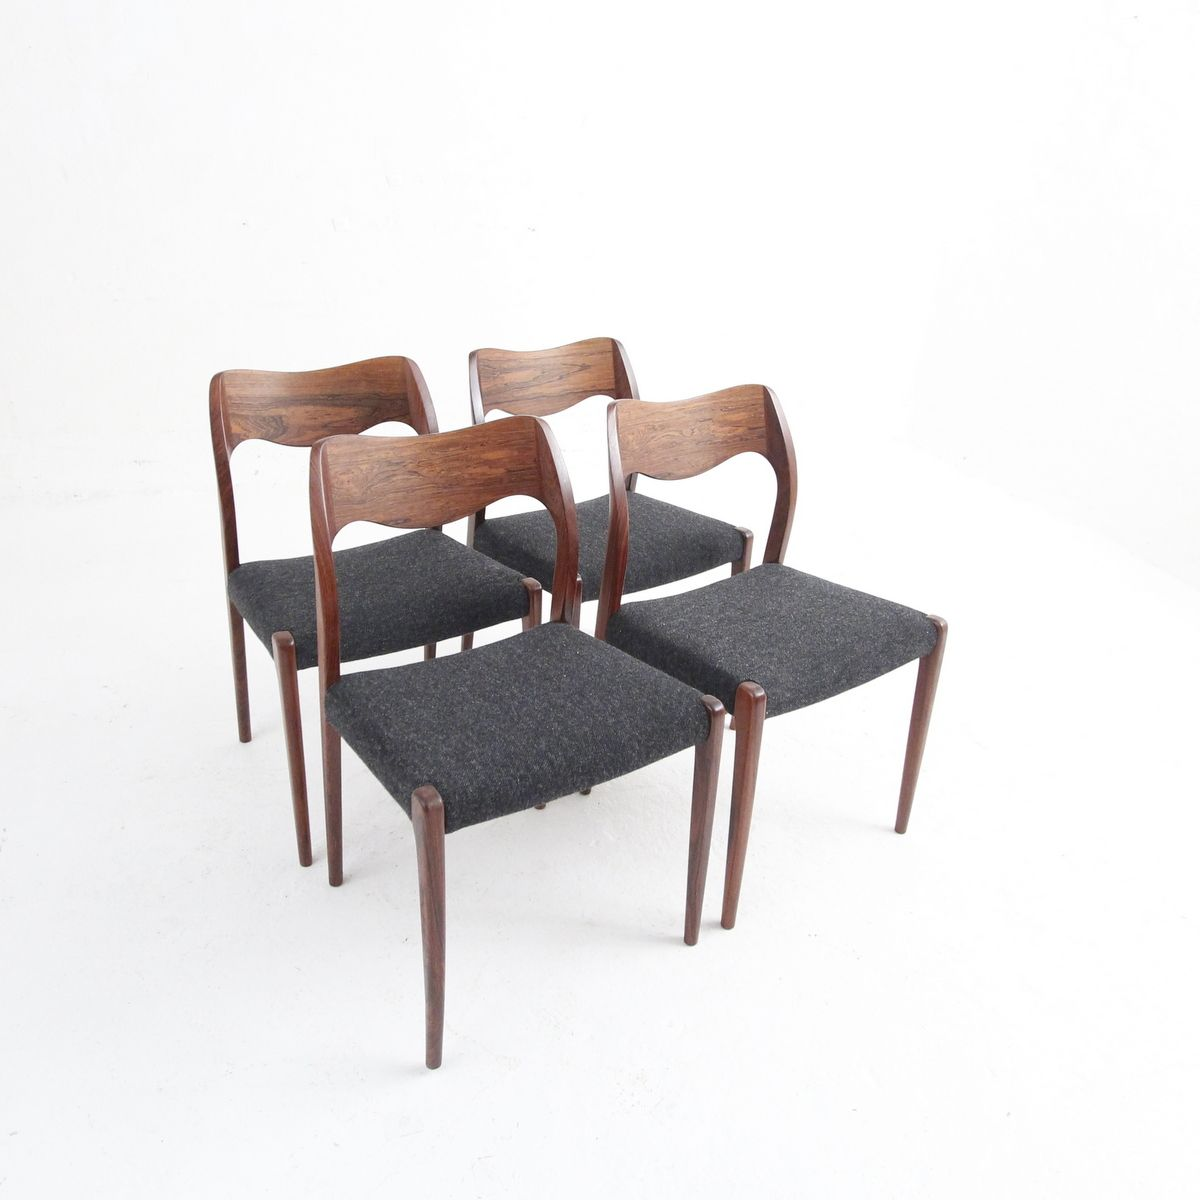 Mid Century Danish Dining Chairs In Rosewood By N O Moller Set Of 4 For Sale At Pamono